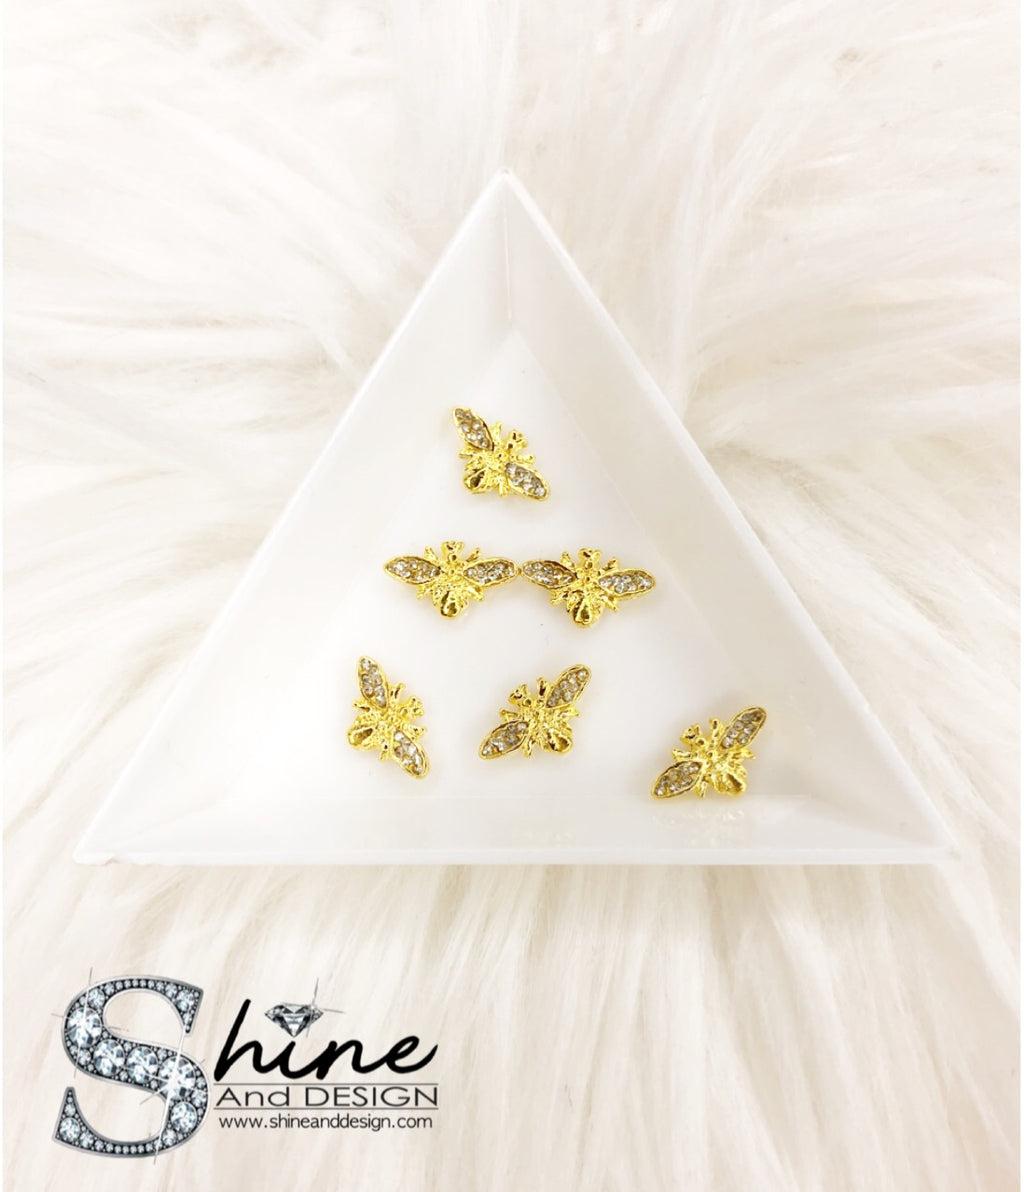 "Shine Metal Alloy Charms with Crystals -Runway Collection ""Diamond Gucci Bee Inspired"""